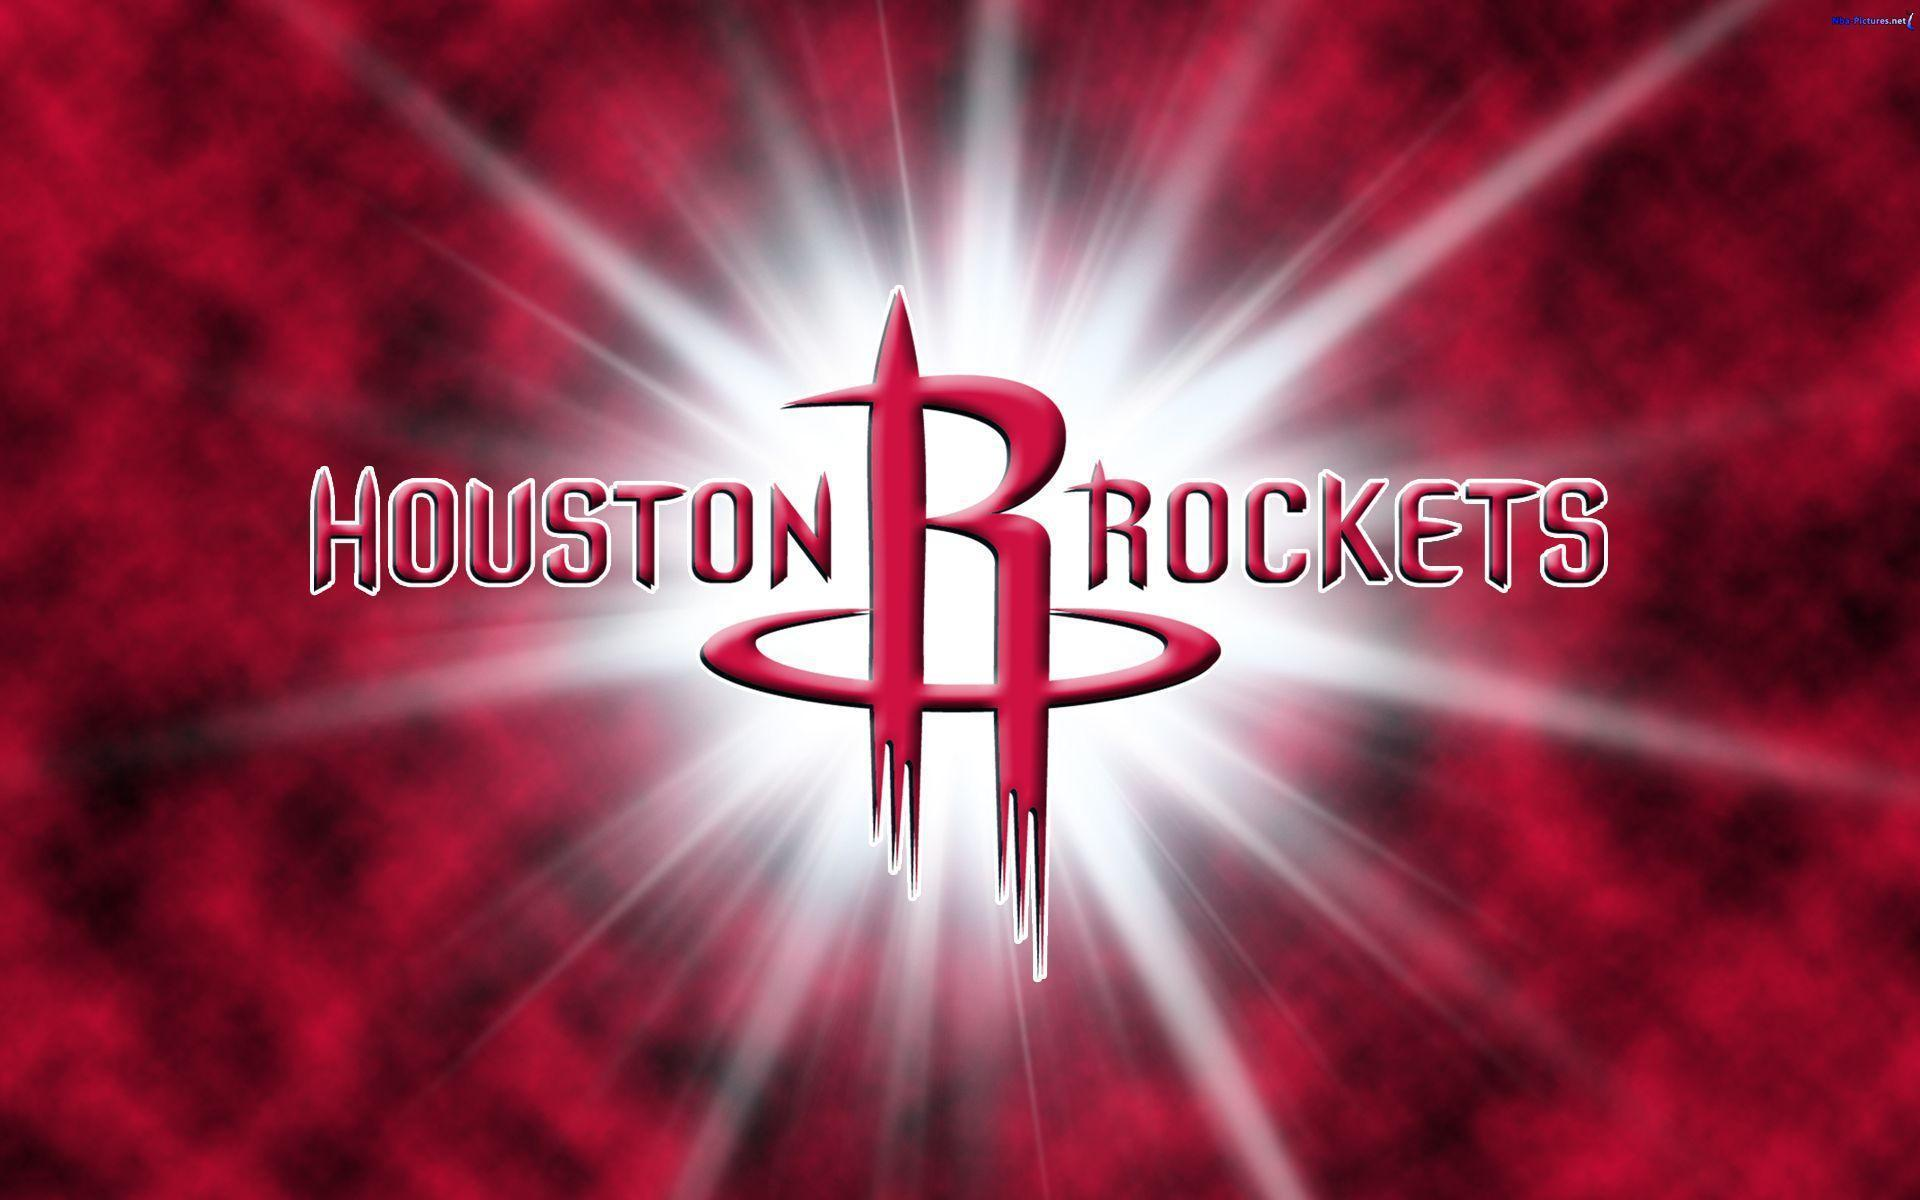 NBA Free Agency News: Rockets Add More Positionless Forwards To Bolster Small-Ball Line-Up